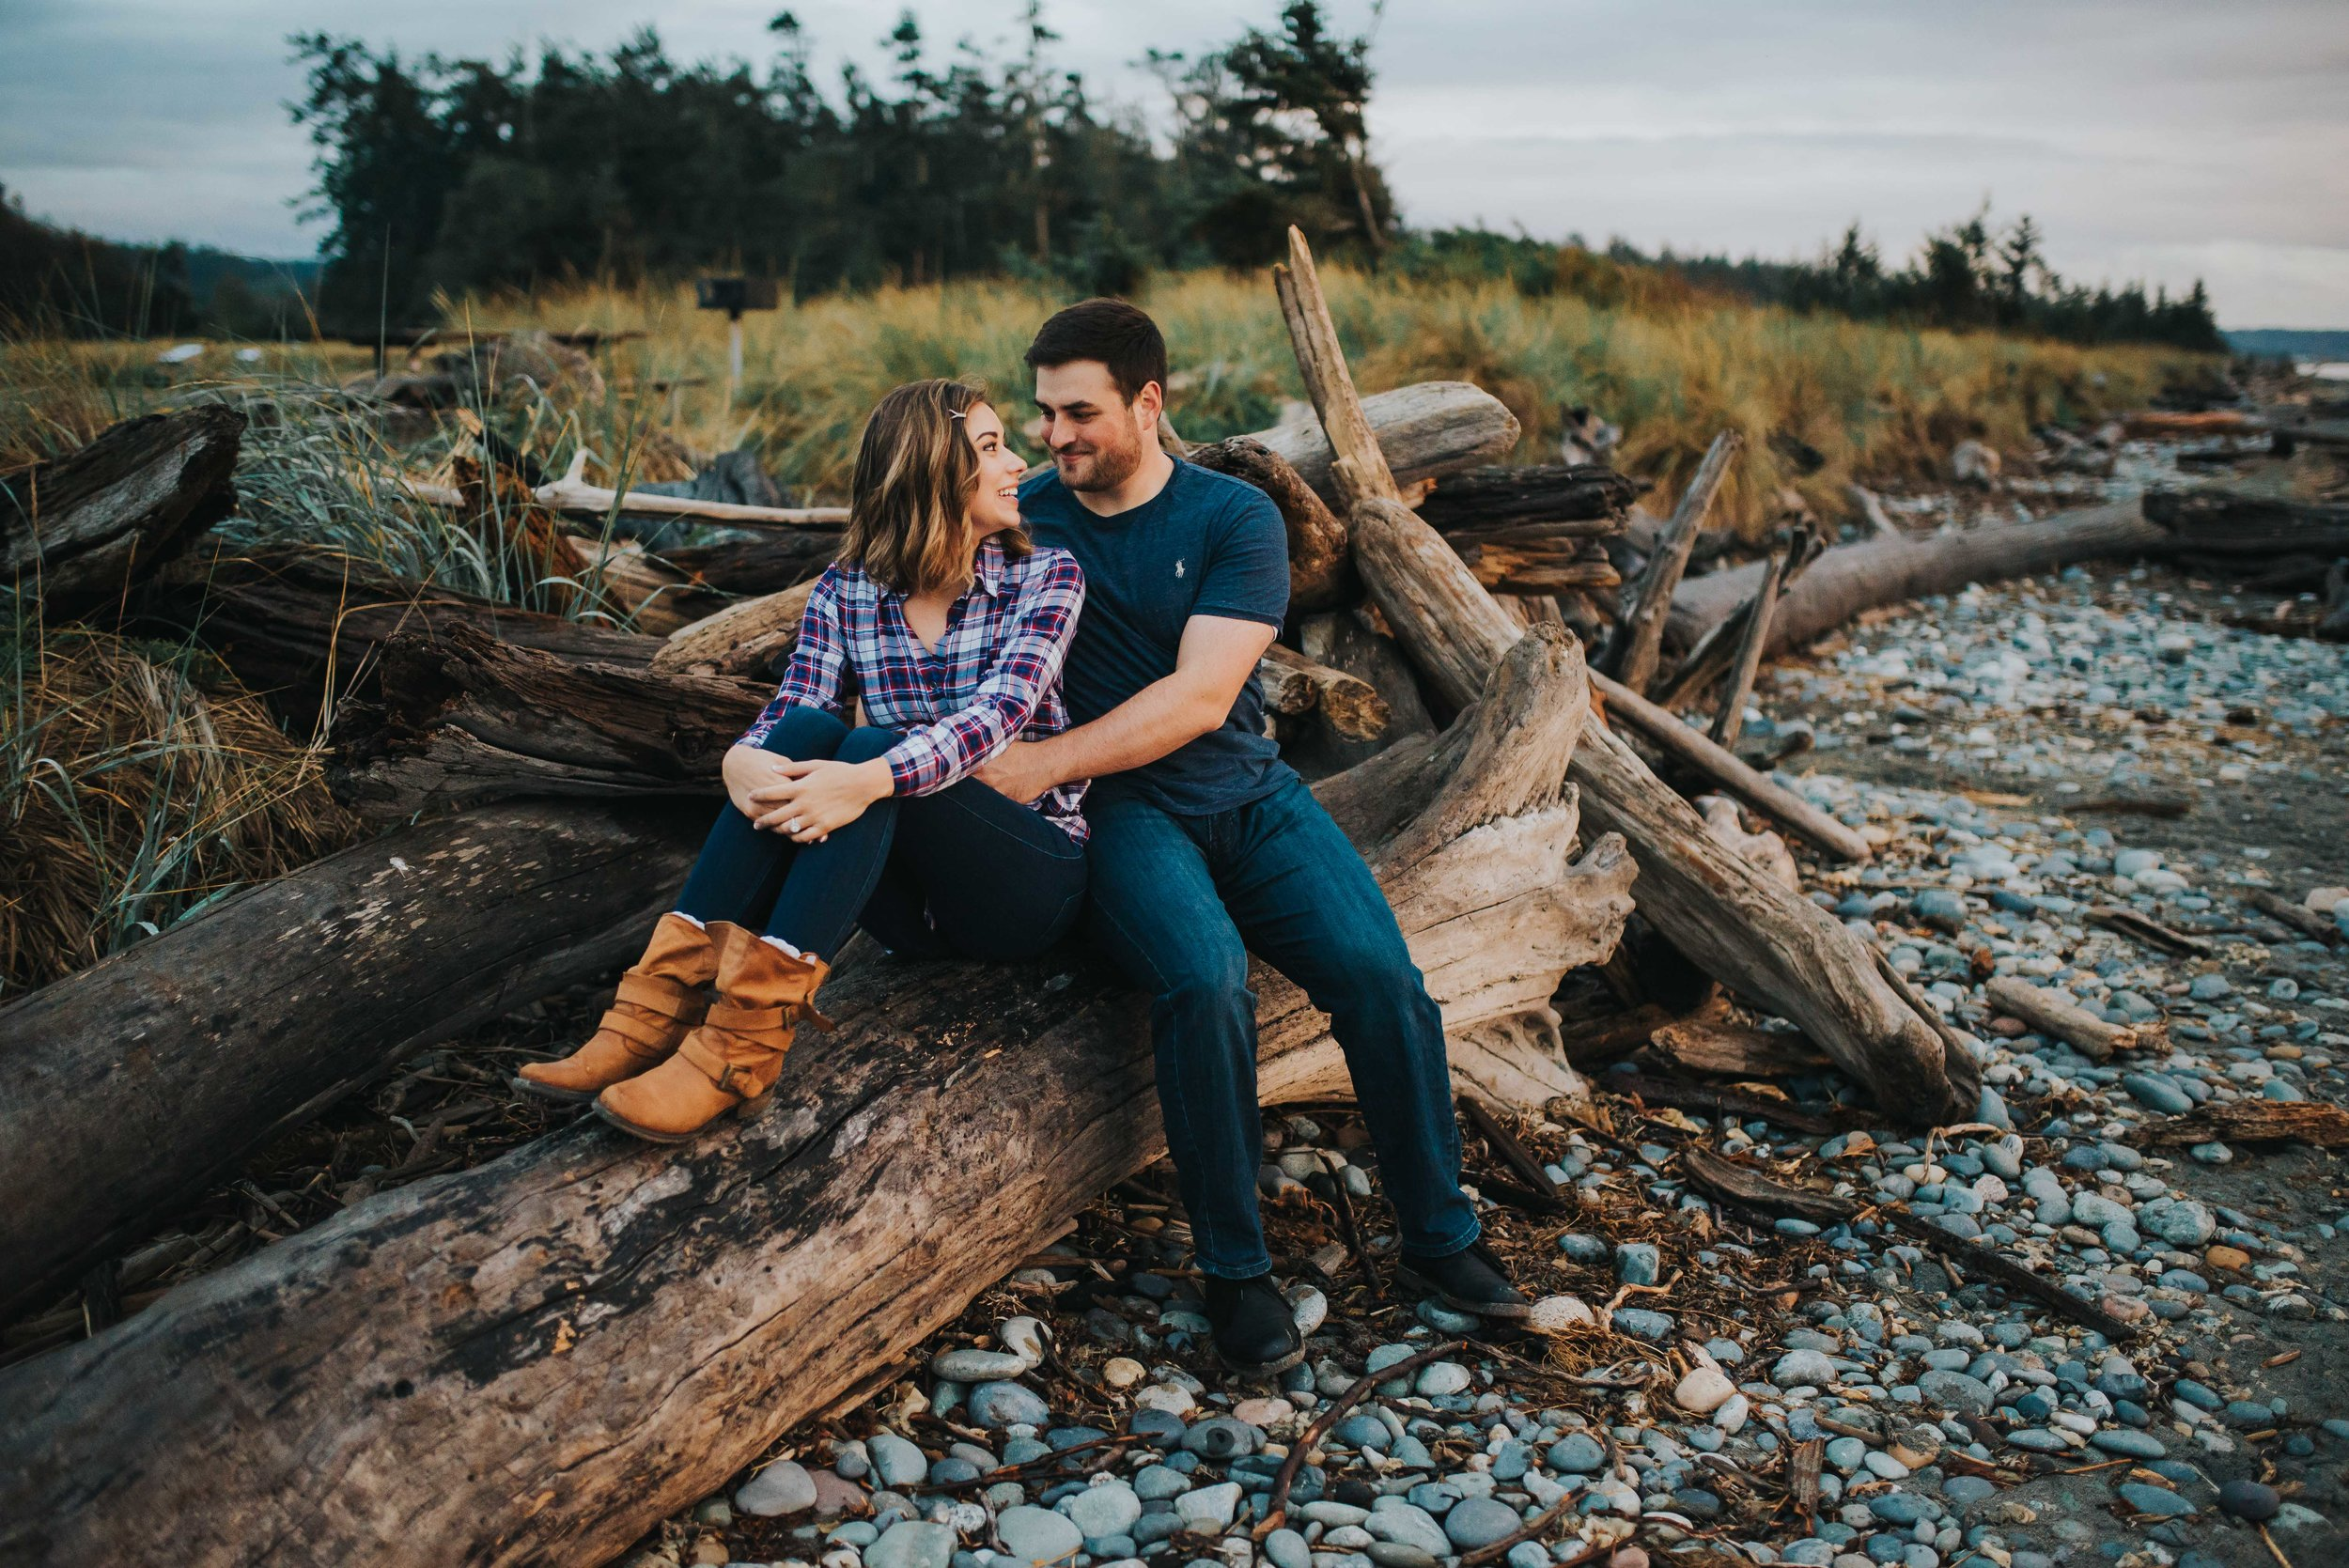 Whidbey-Island-Engagement-Photos-30.jpg